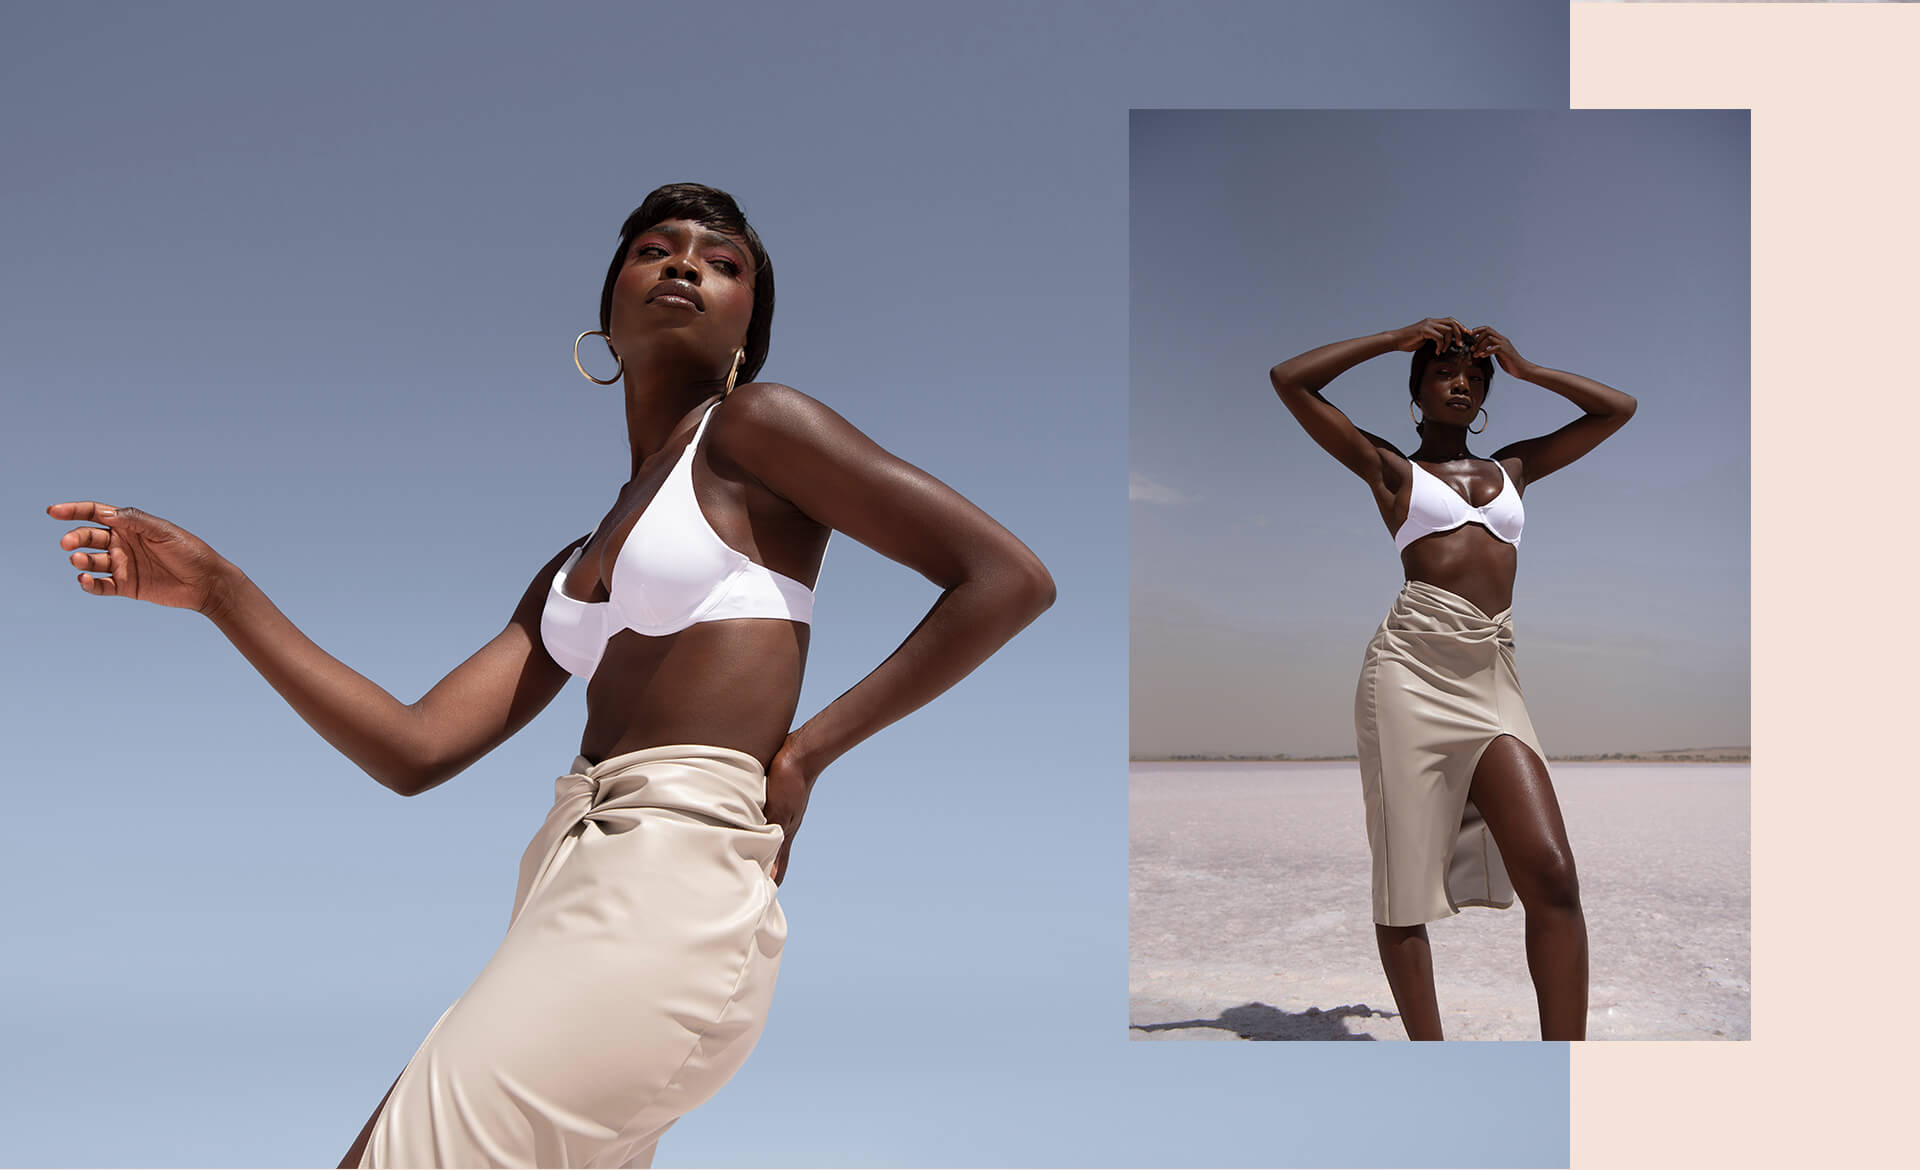 Desert Dreams Lookbook Image 6 Desktop